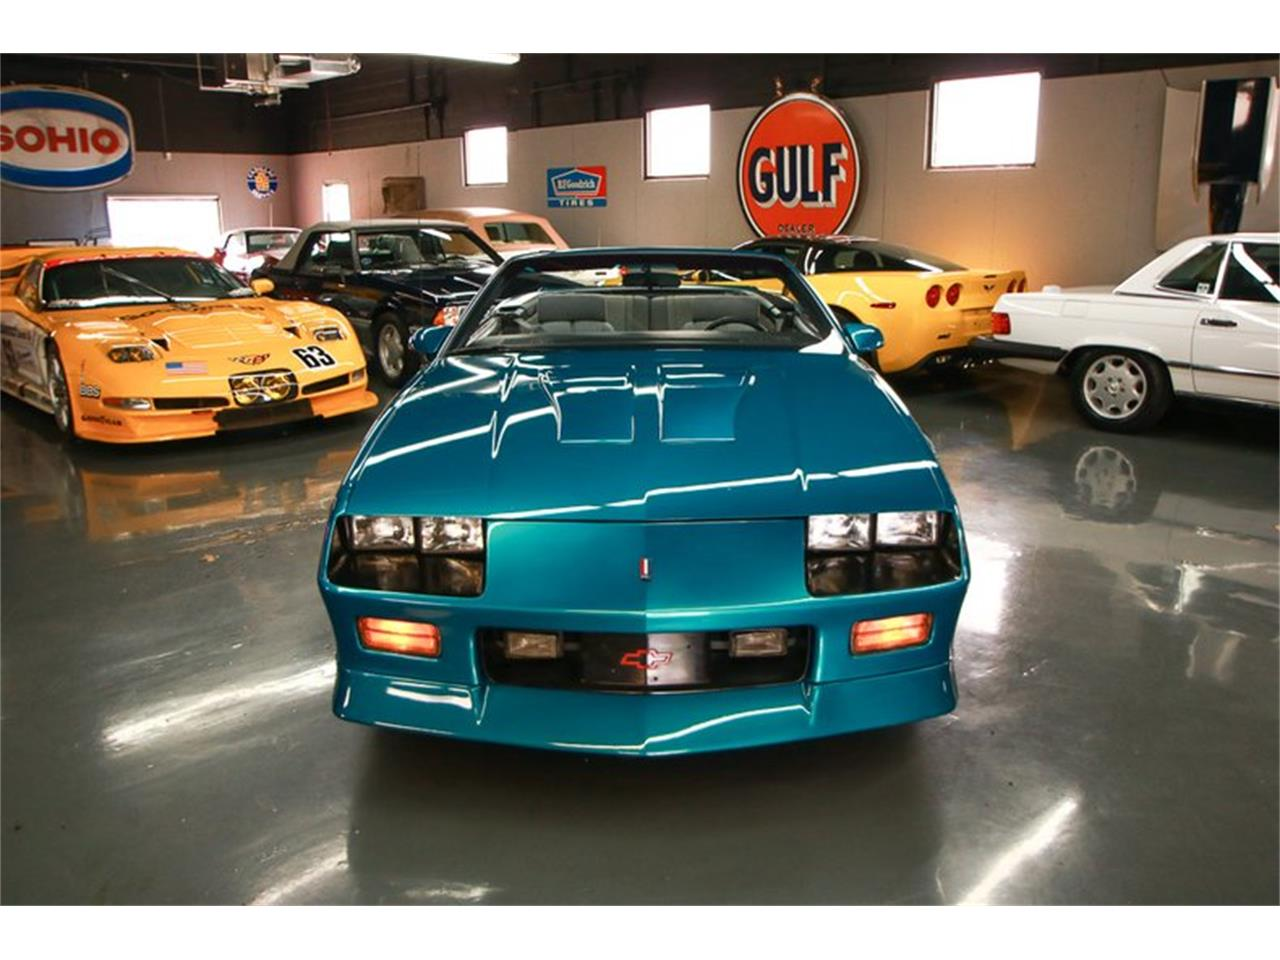 Large Picture of 1992 Chevrolet Camaro located in Ohio - $12,900.00 Offered by Seven Hills Motorcars - QLU7